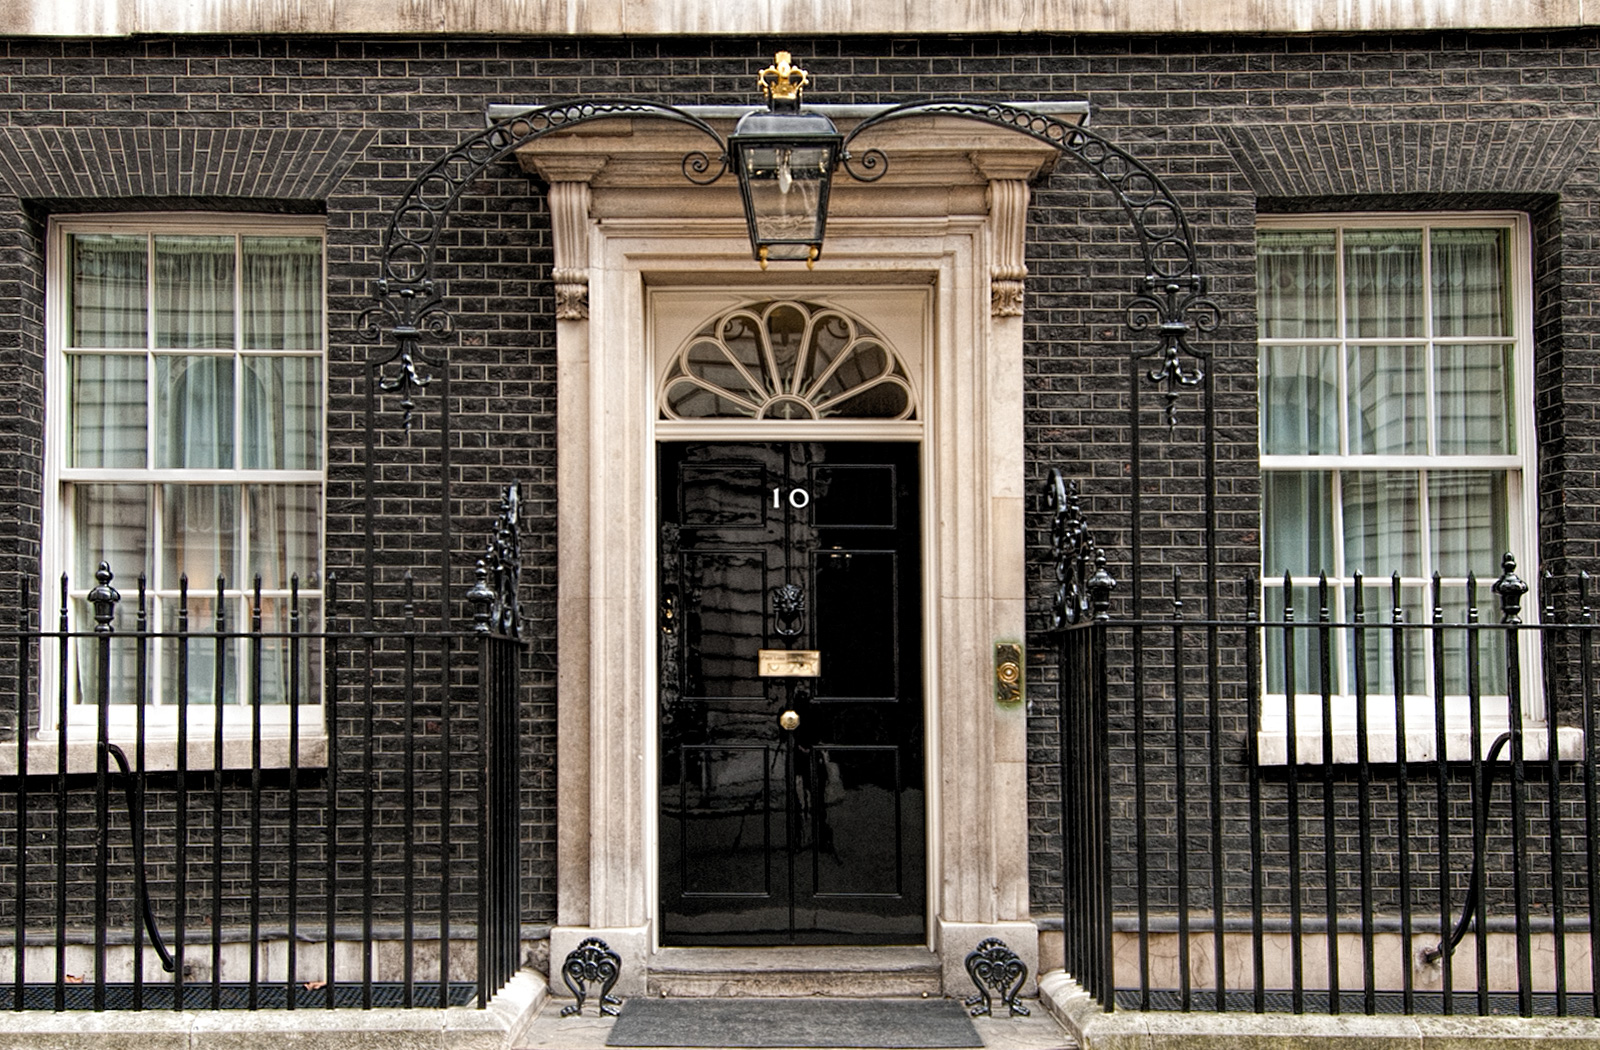 10 Downing Street Virtual Tours